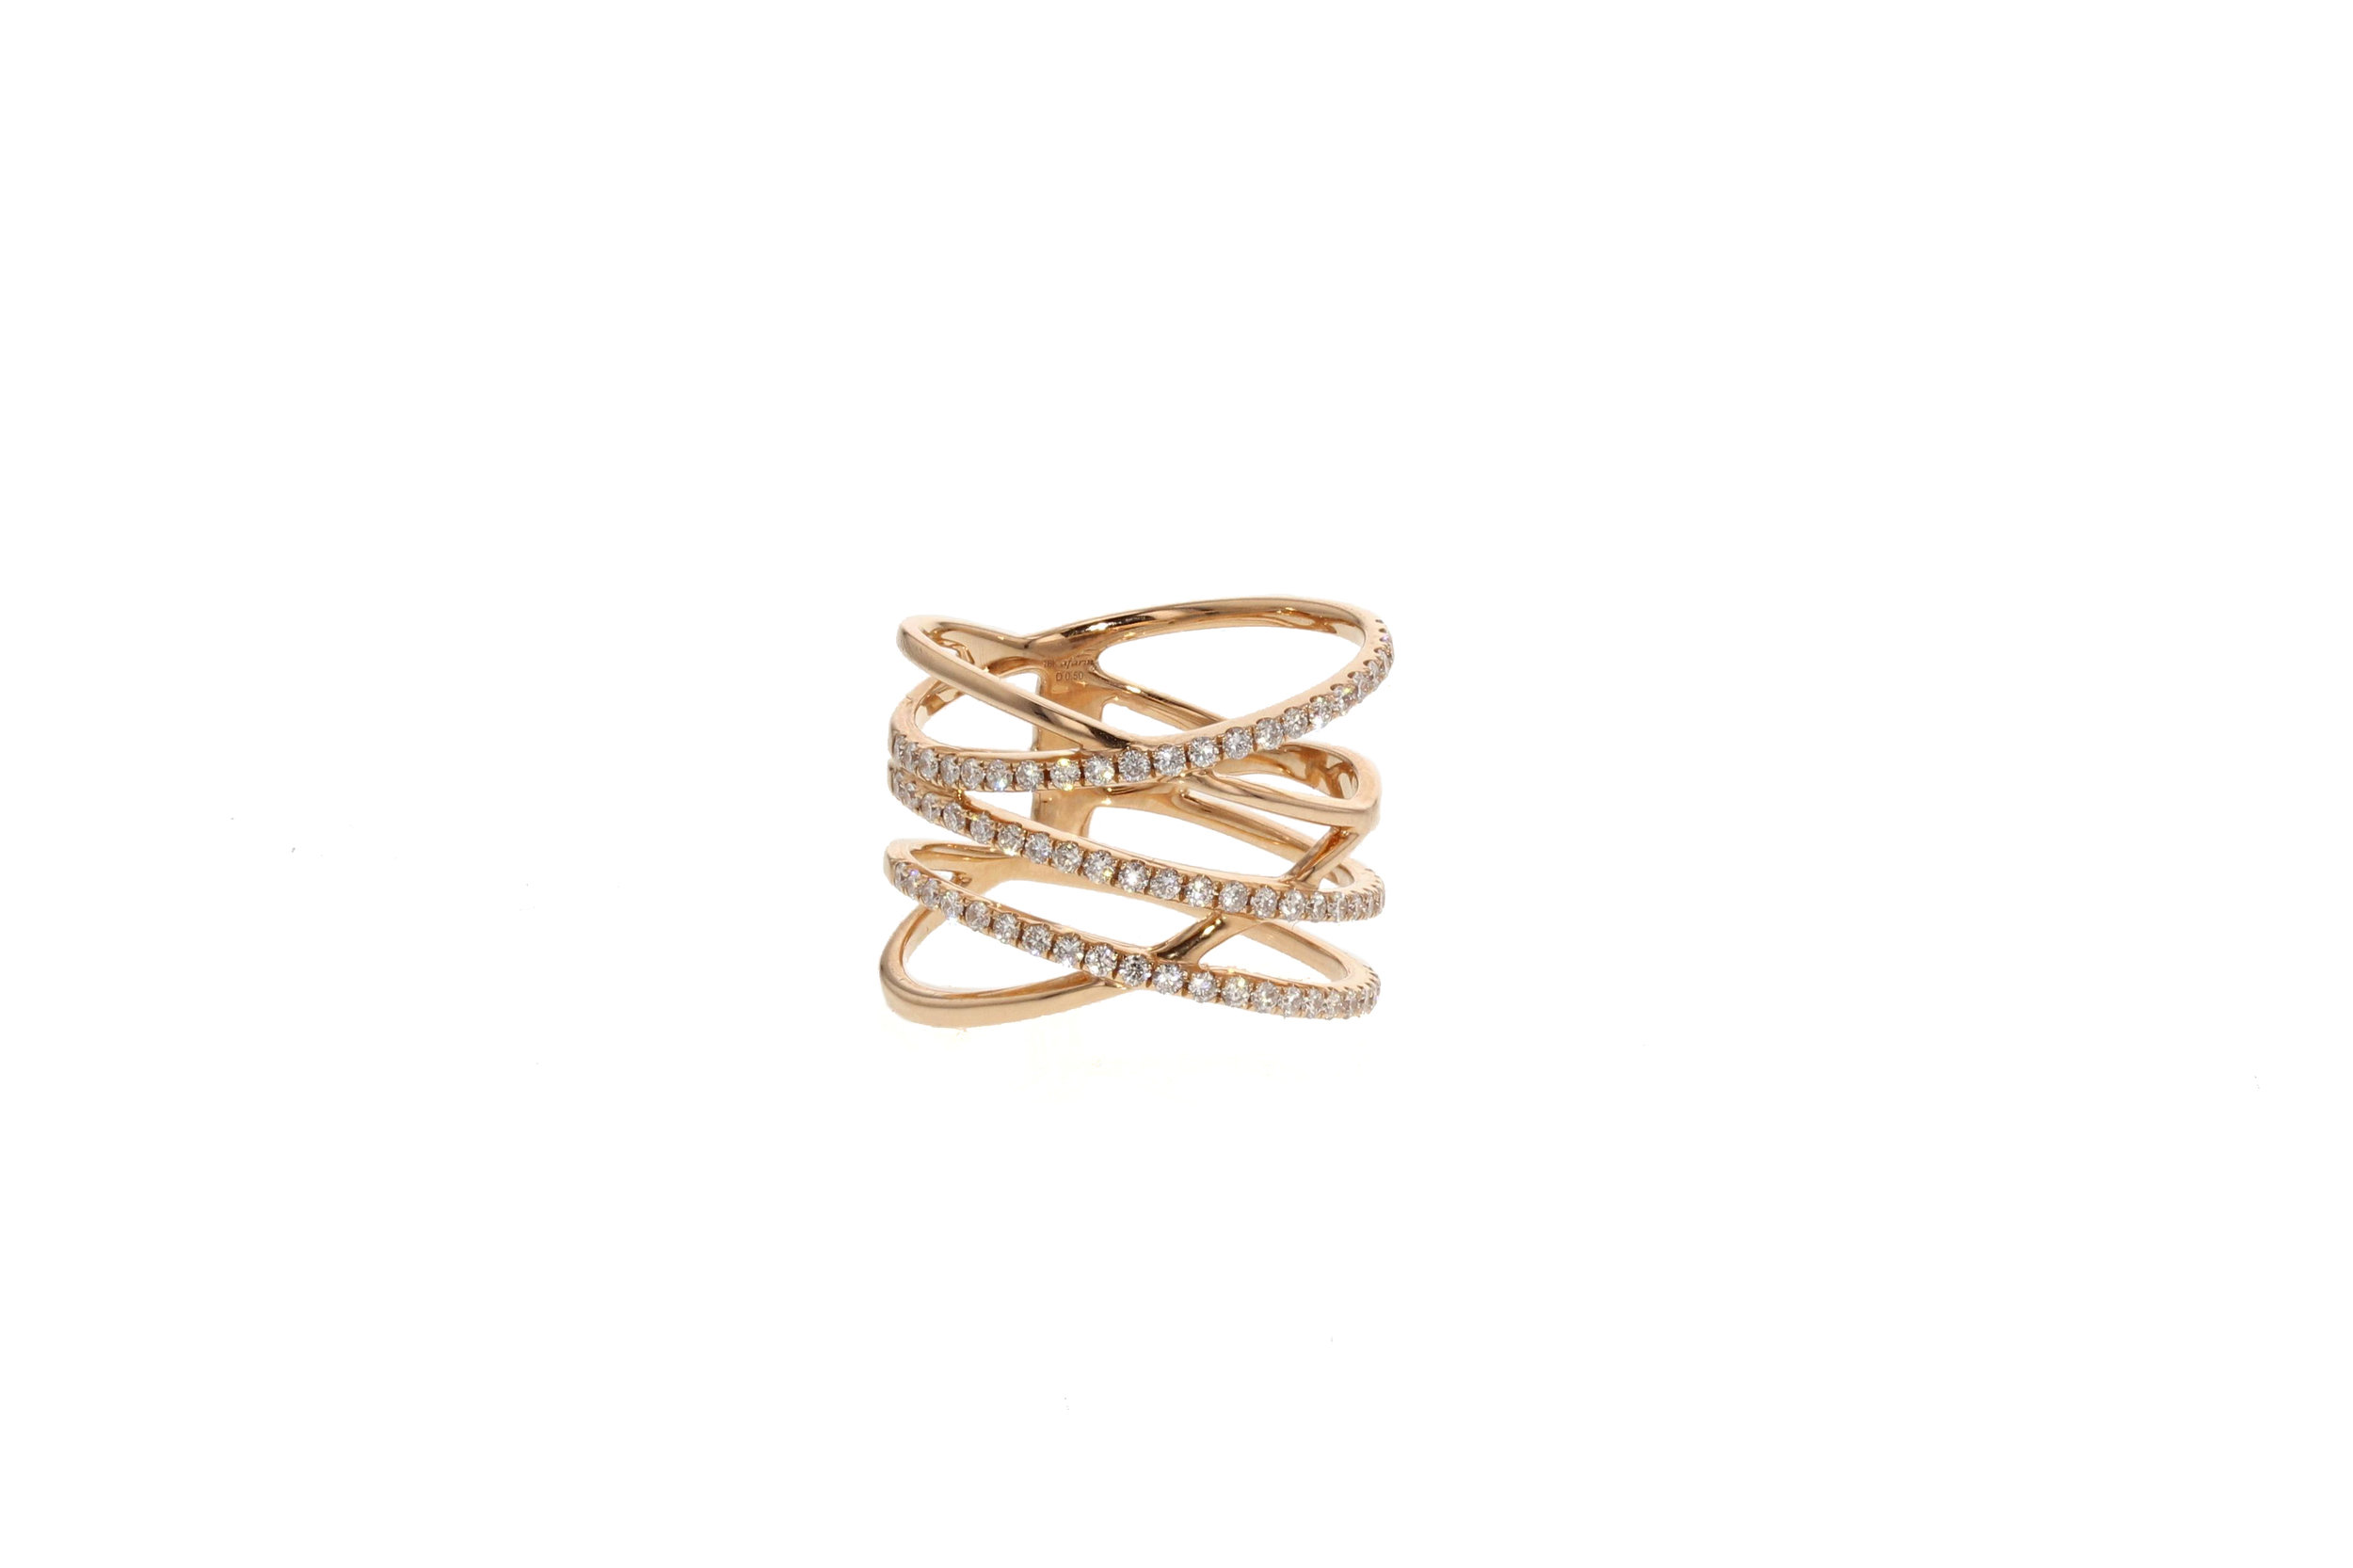 18kt Rose Gold Double Criss Cross Ring 0.50 tcw.$3625